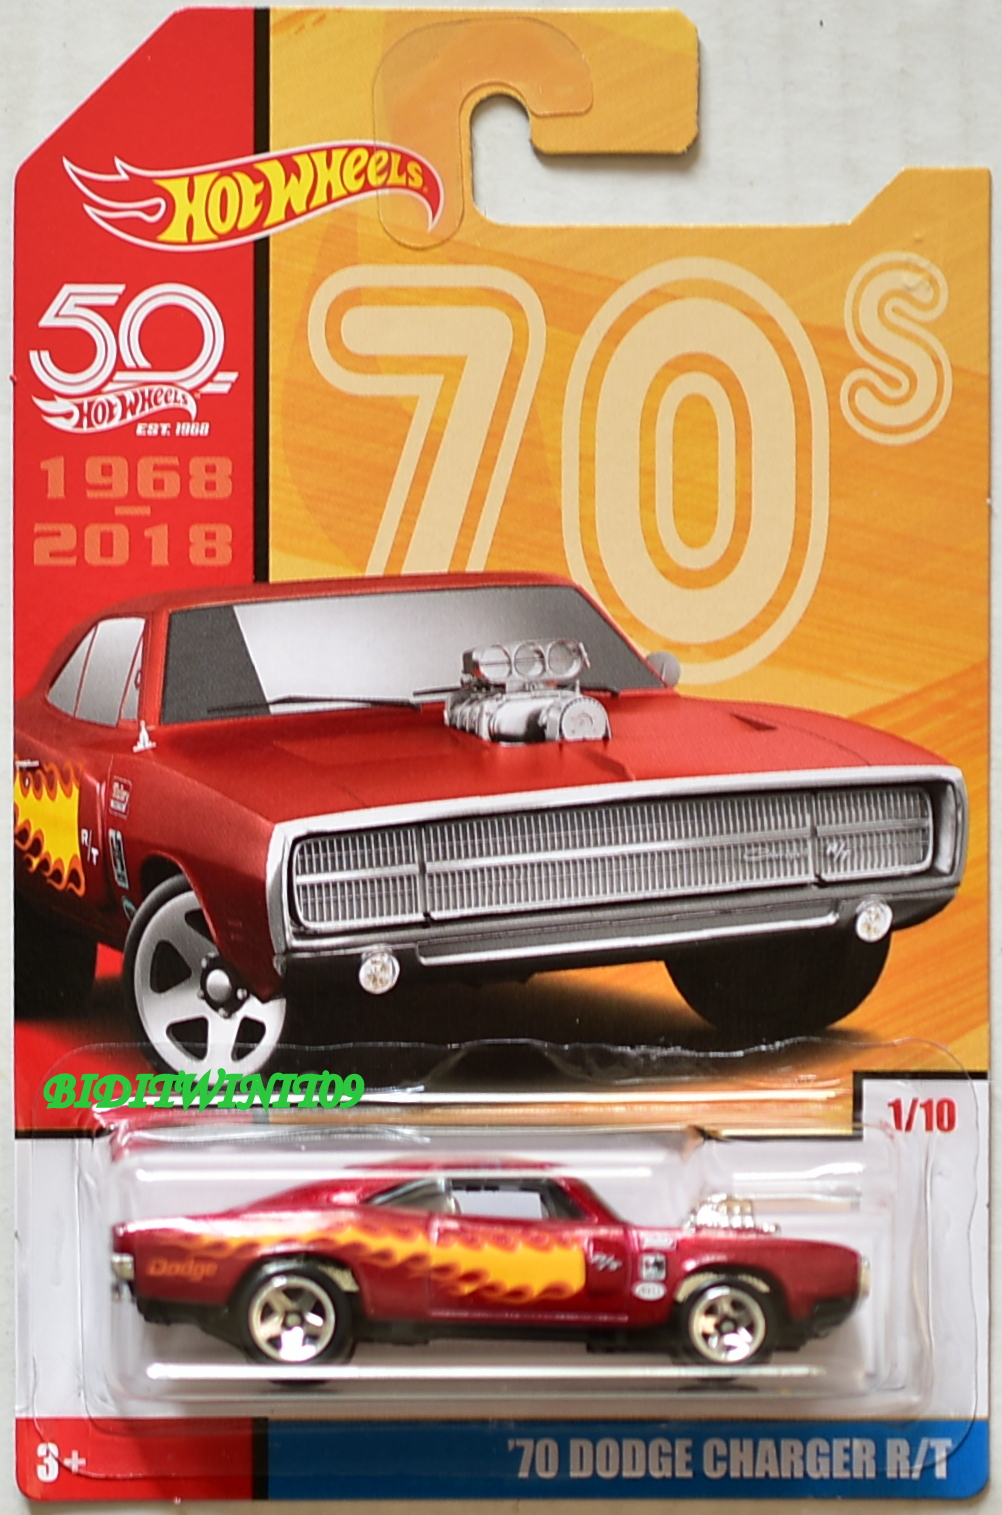 HOT WHEELS 50 YEARS 70S '70 DODGE CHARGER R/T #1/10